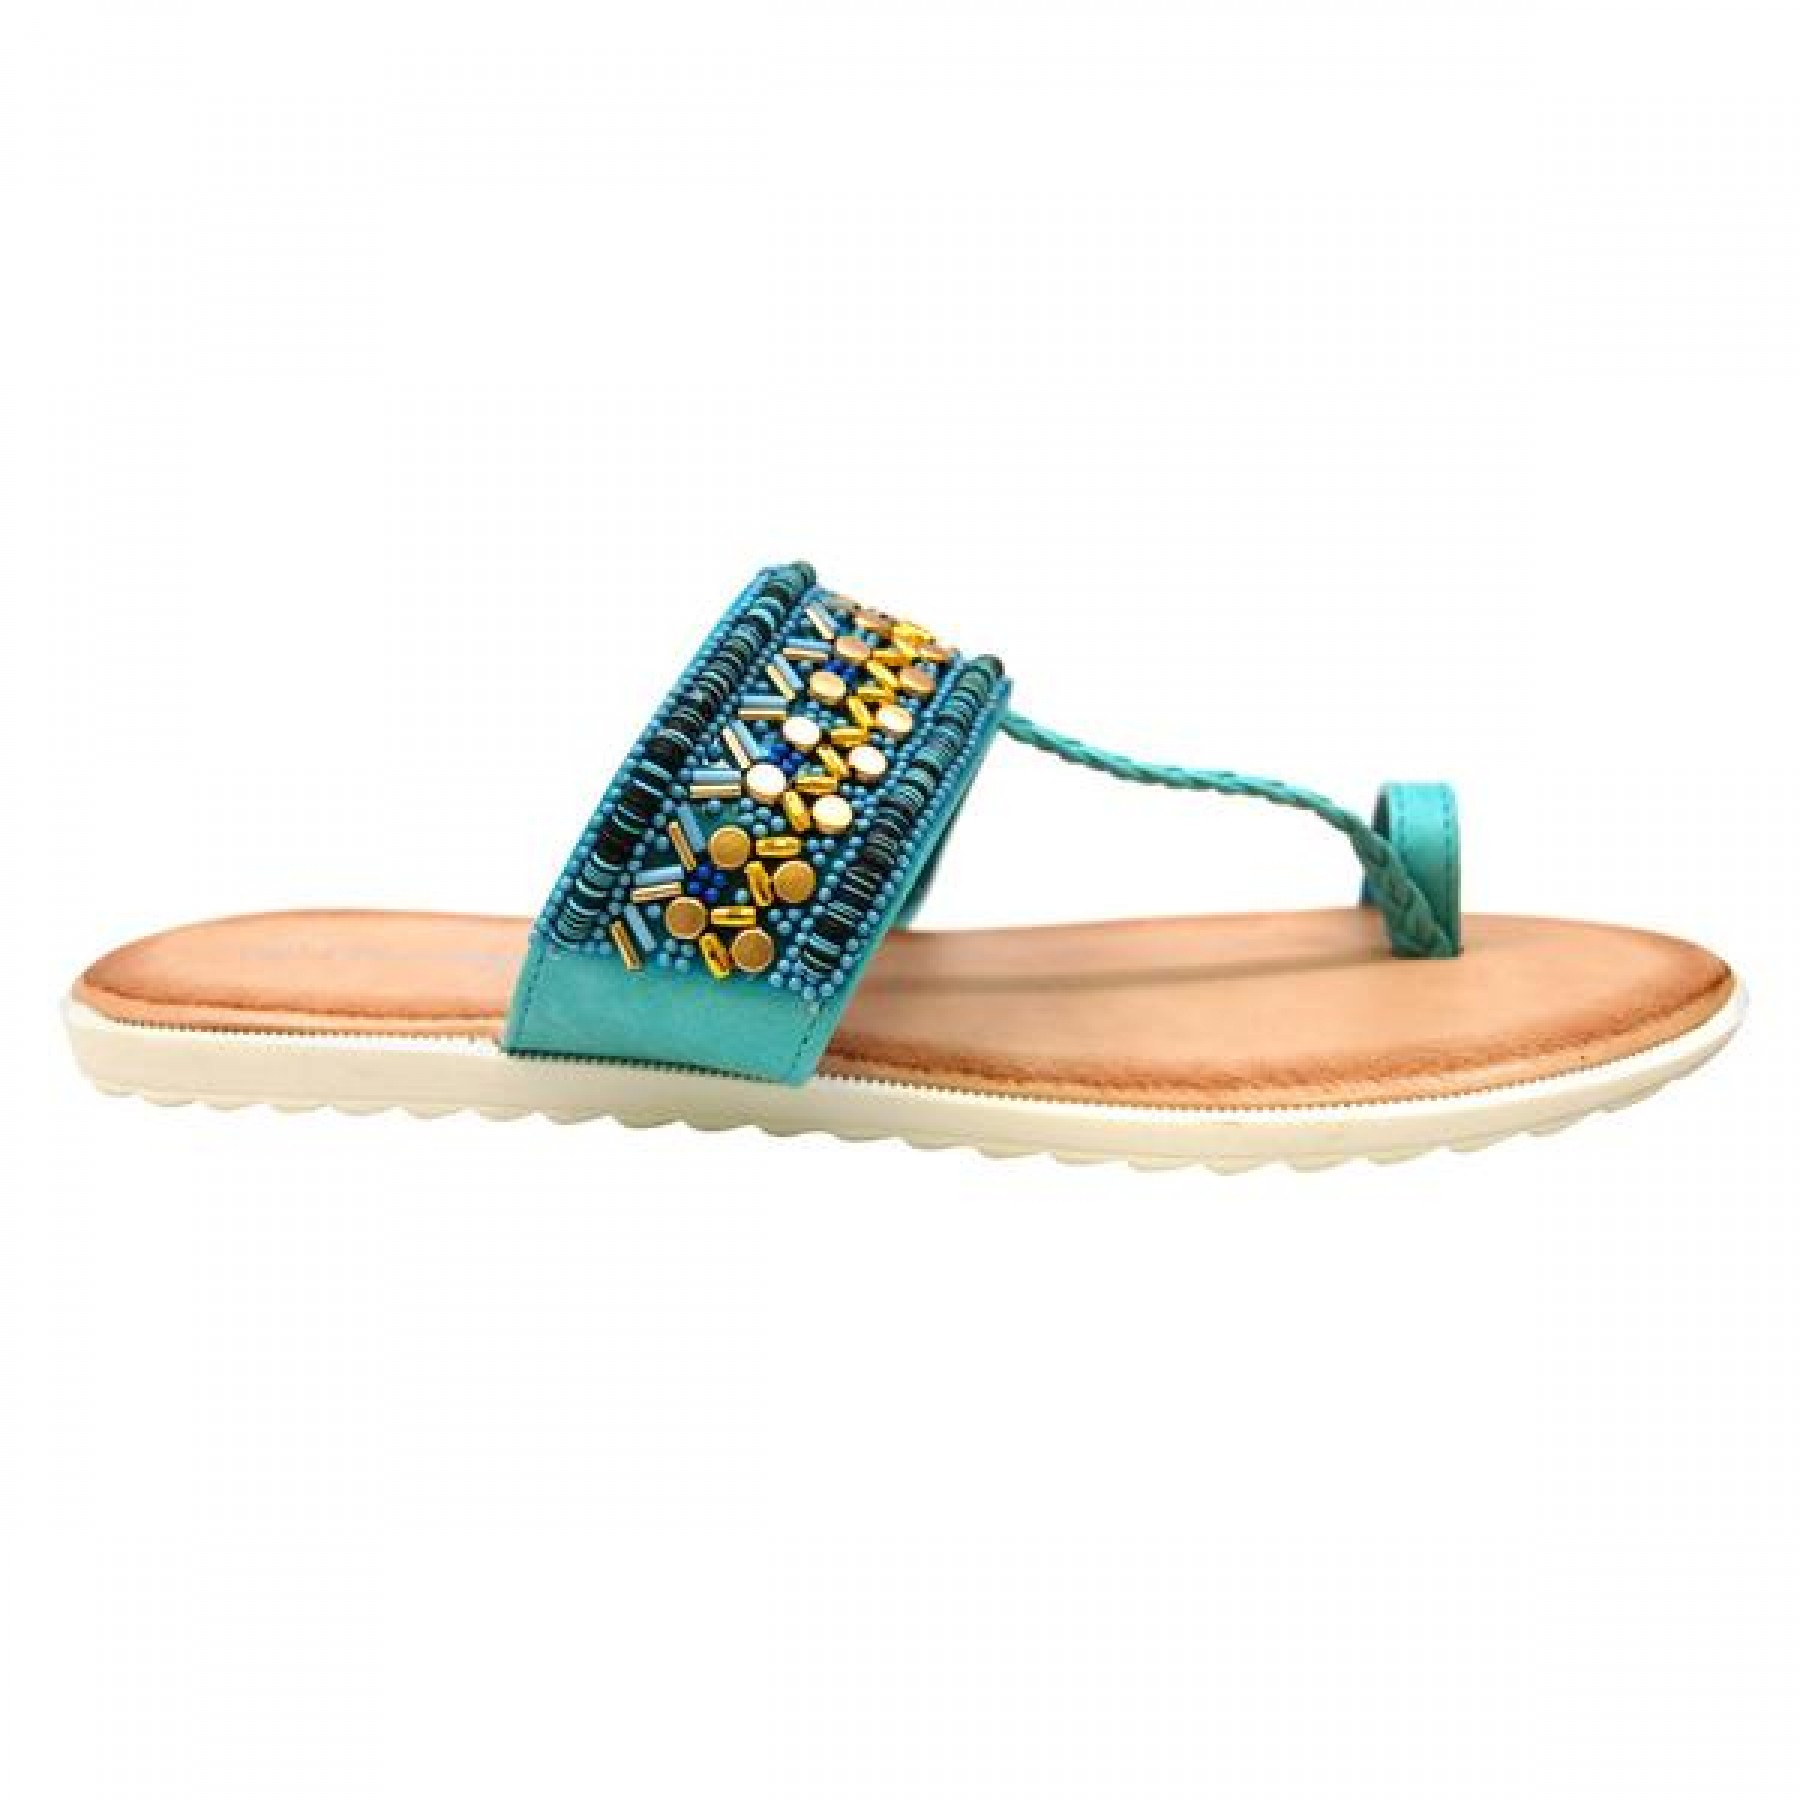 Women's Blue Manmade Roebella Toe Ring Sandal with Gorgeous Beaded Strap